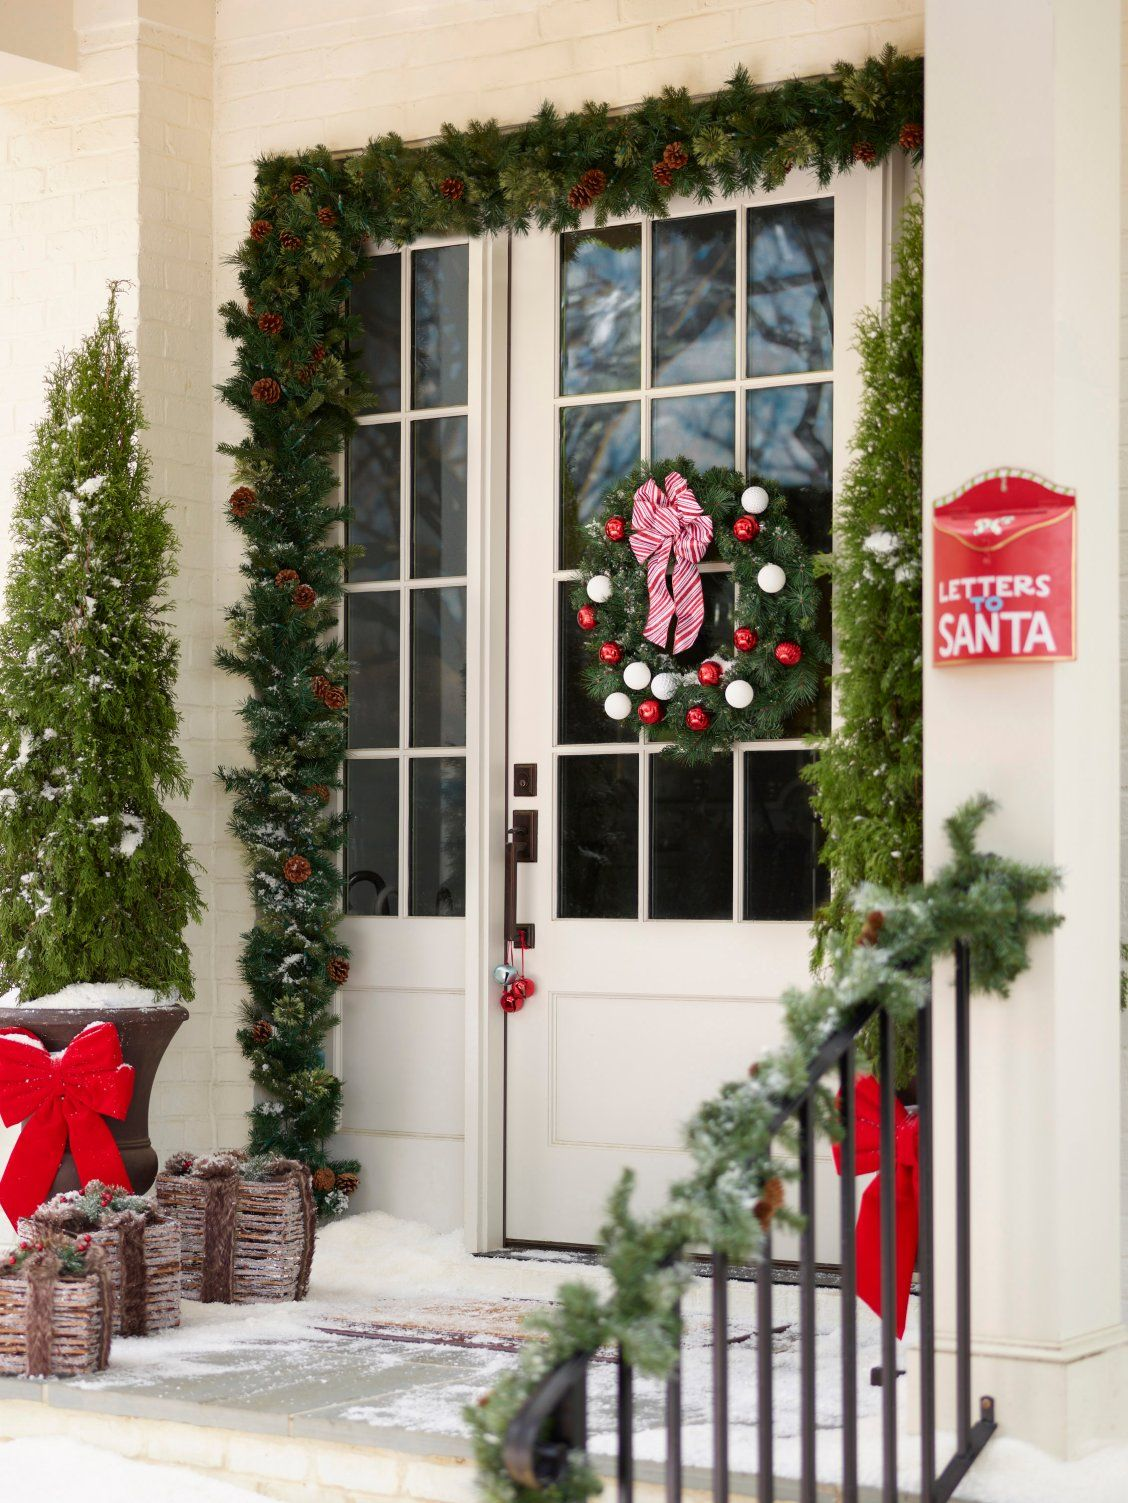 Need some outdoor Christmas decoration ideas? Lowe's has